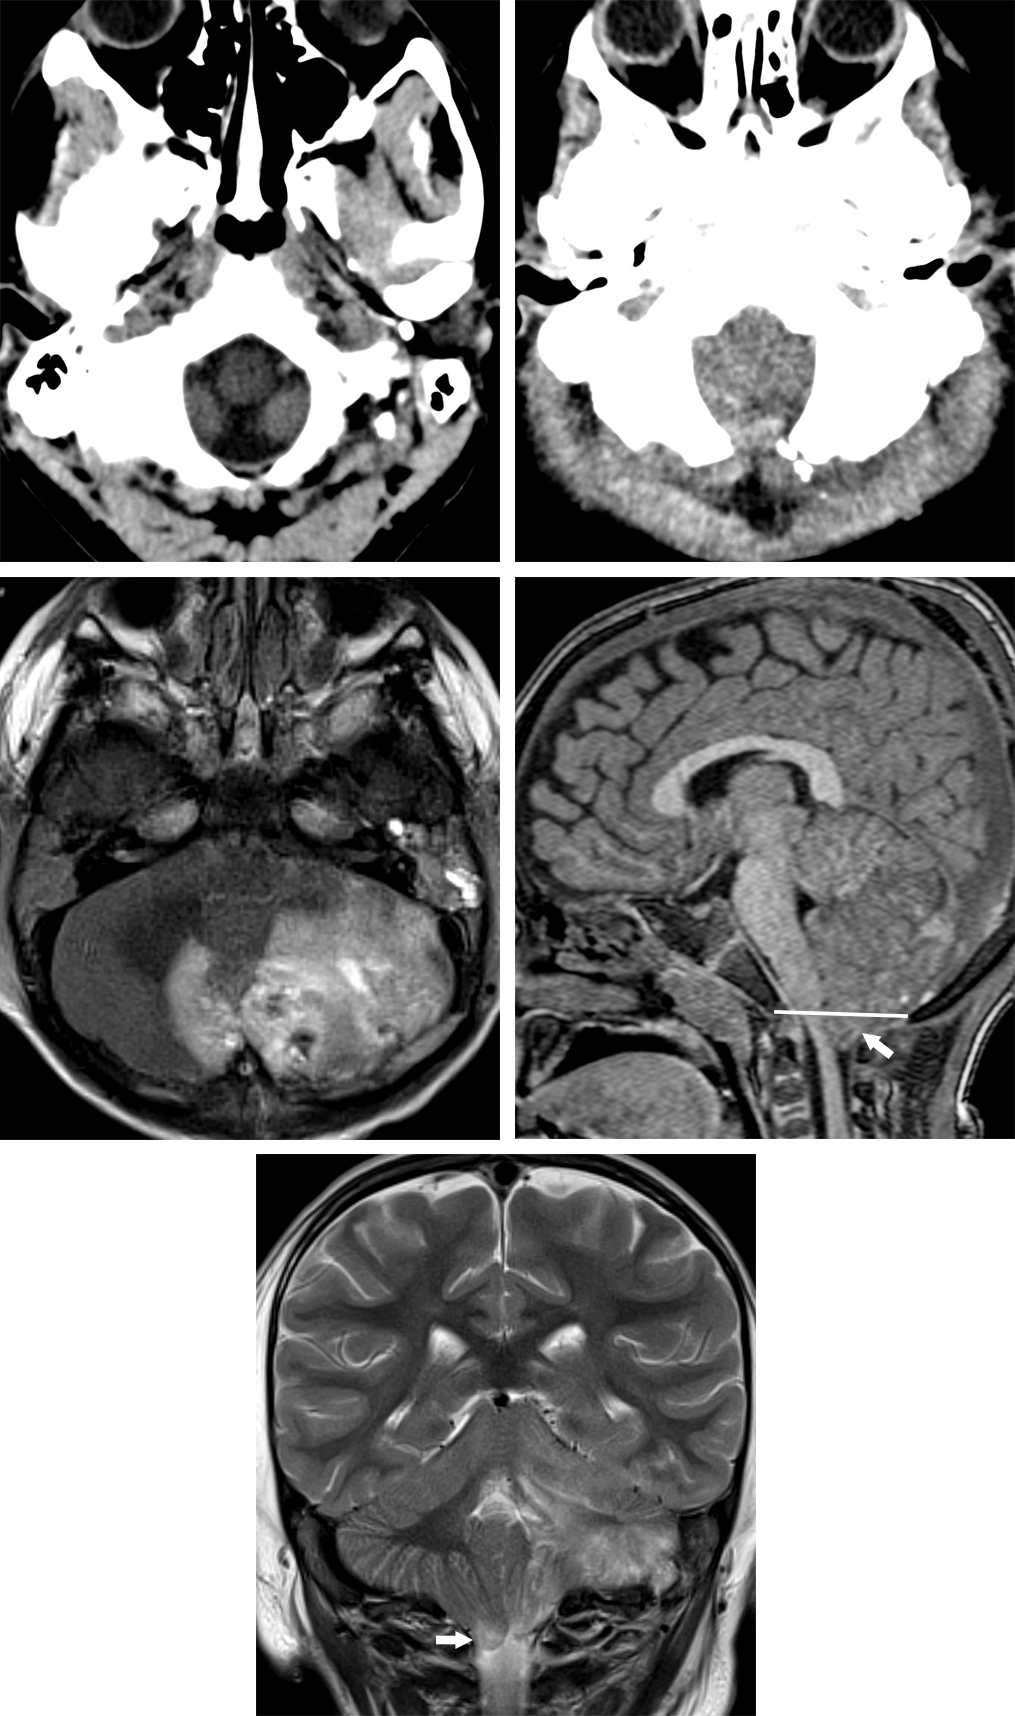 Figure 3: Normal (top row left) and cerebellar tonsillar herniation (top row right) patterns through the posterior fossa on CT. Crowding and lack of low-density CSF at the foramen magnus should prompt a search for cerebellar tonsillar herniation. Followup axial T2-weighted MR images (middle row left) on this 2-year-old patient after trauma more clearly revealed the posterior fossa contusion with high signal intensity edema and low signal intensity hemorrhage in the cerebellum. Blood is also present in the left mastoid air cells as a result of a fracture. The sagittal (middle row right) and coronal (bottom row) images demonstrate edematous cerebellar tonsils (arrow) herniating below the level of the foramen magnum (line).